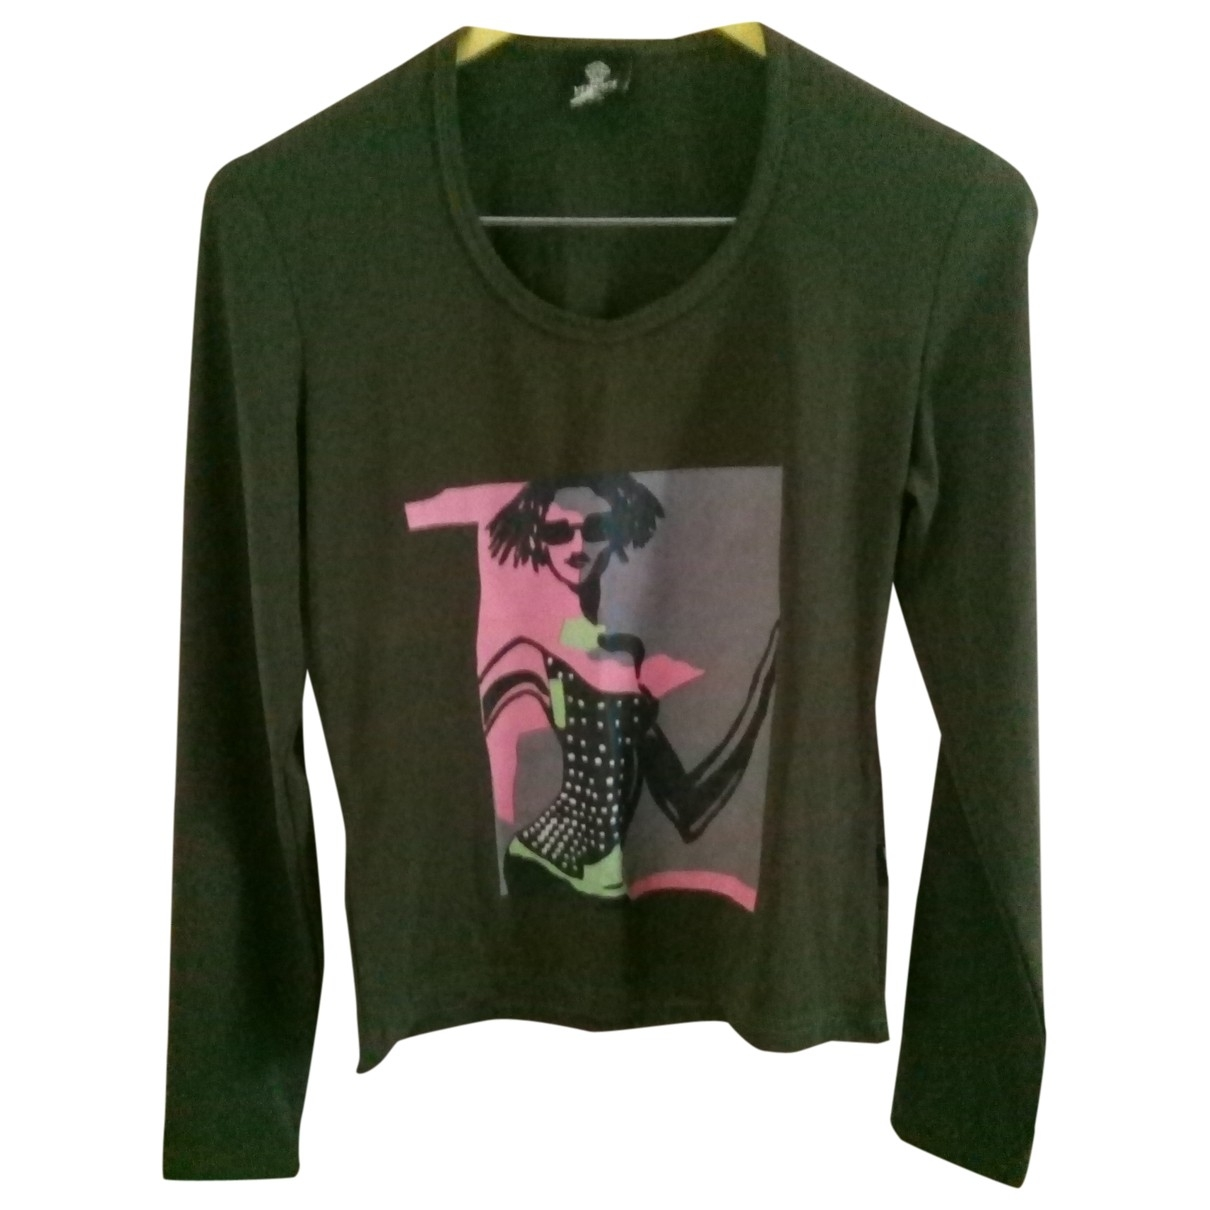 Versace Jeans \N Green  top for Women L International